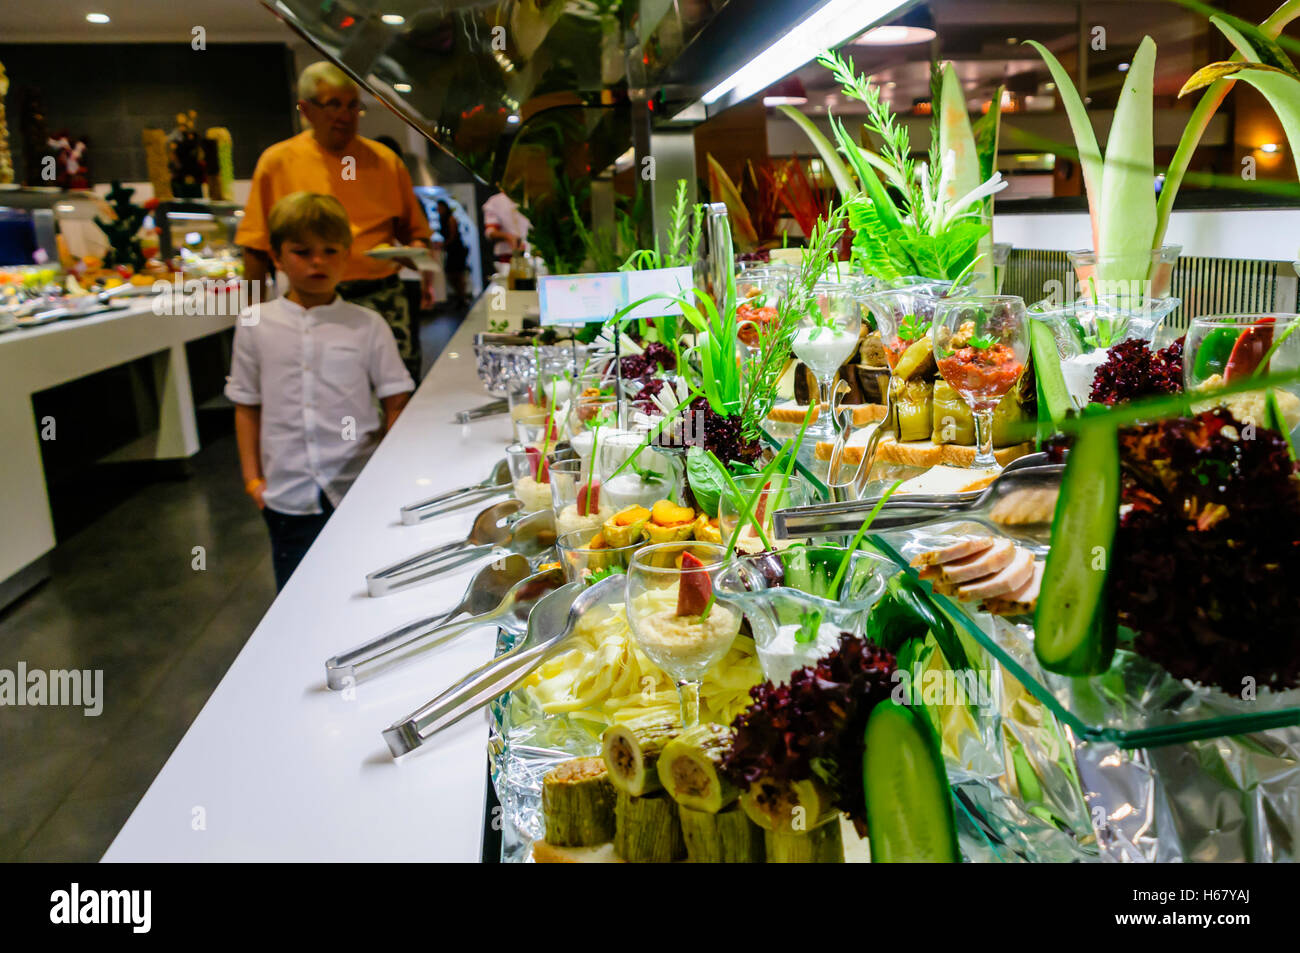 Large selection of cheese with ornate decoration at the buffet of a hotel restaurant Stock Photo